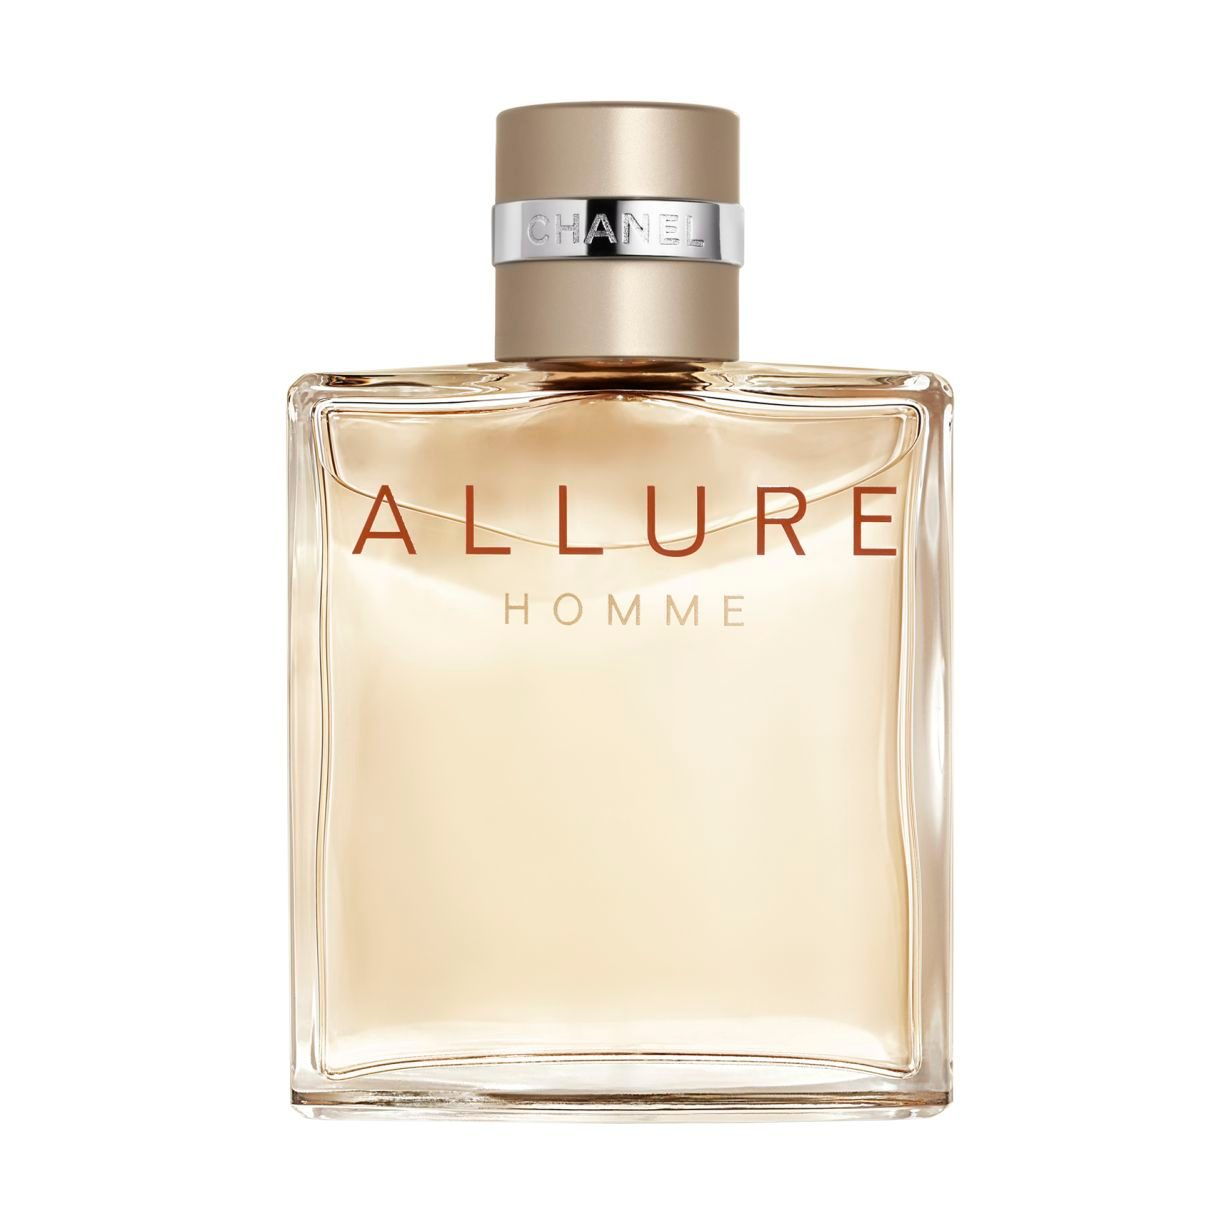 ALLURE HOMME EAU DE TOILETTE SPRAY 100ml